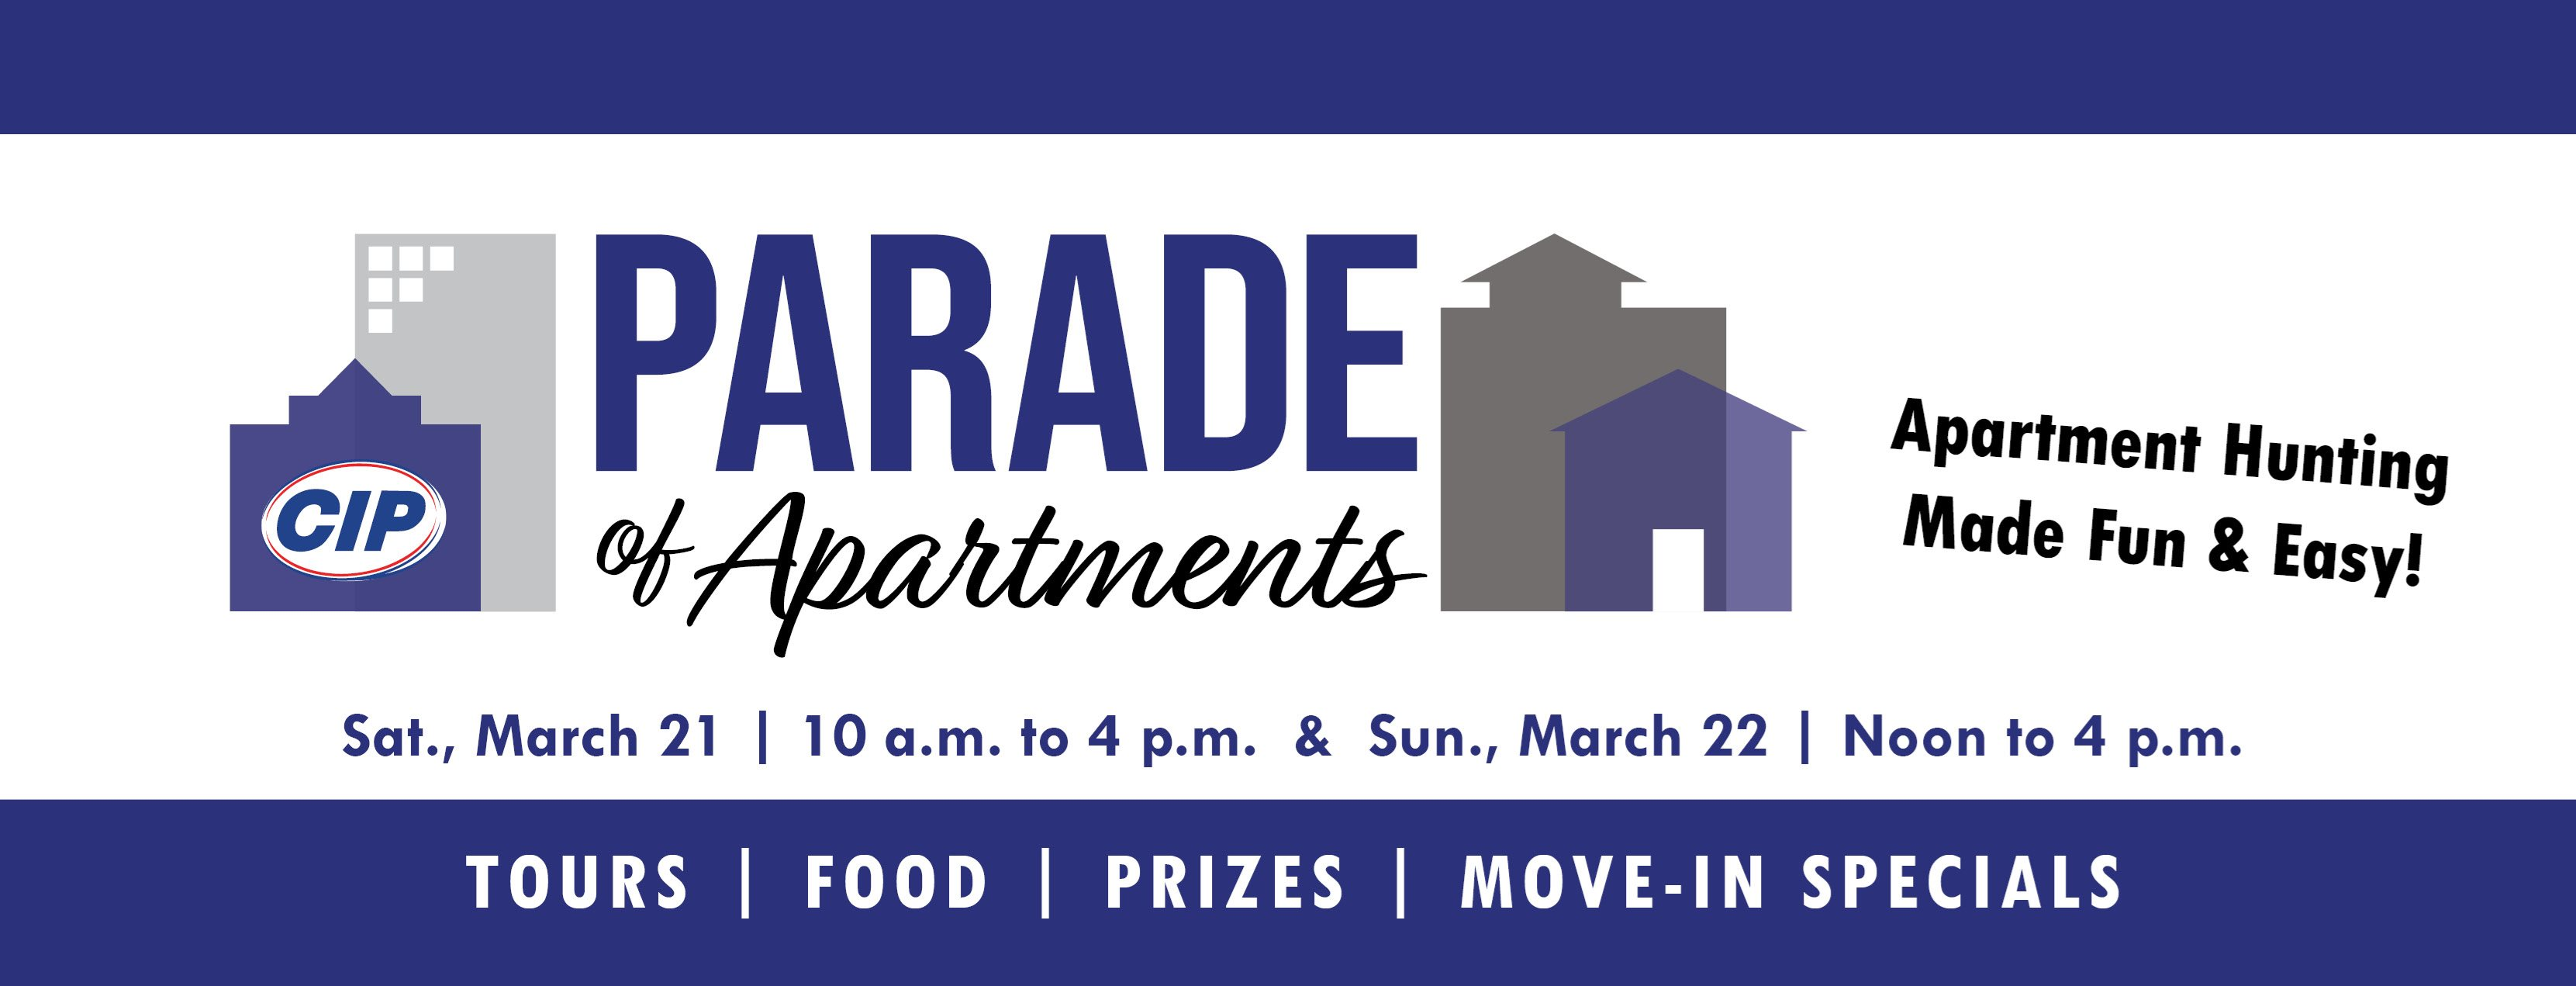 2020 Parade of Apartments is March 21 and 22 in Lincoln and Omaha